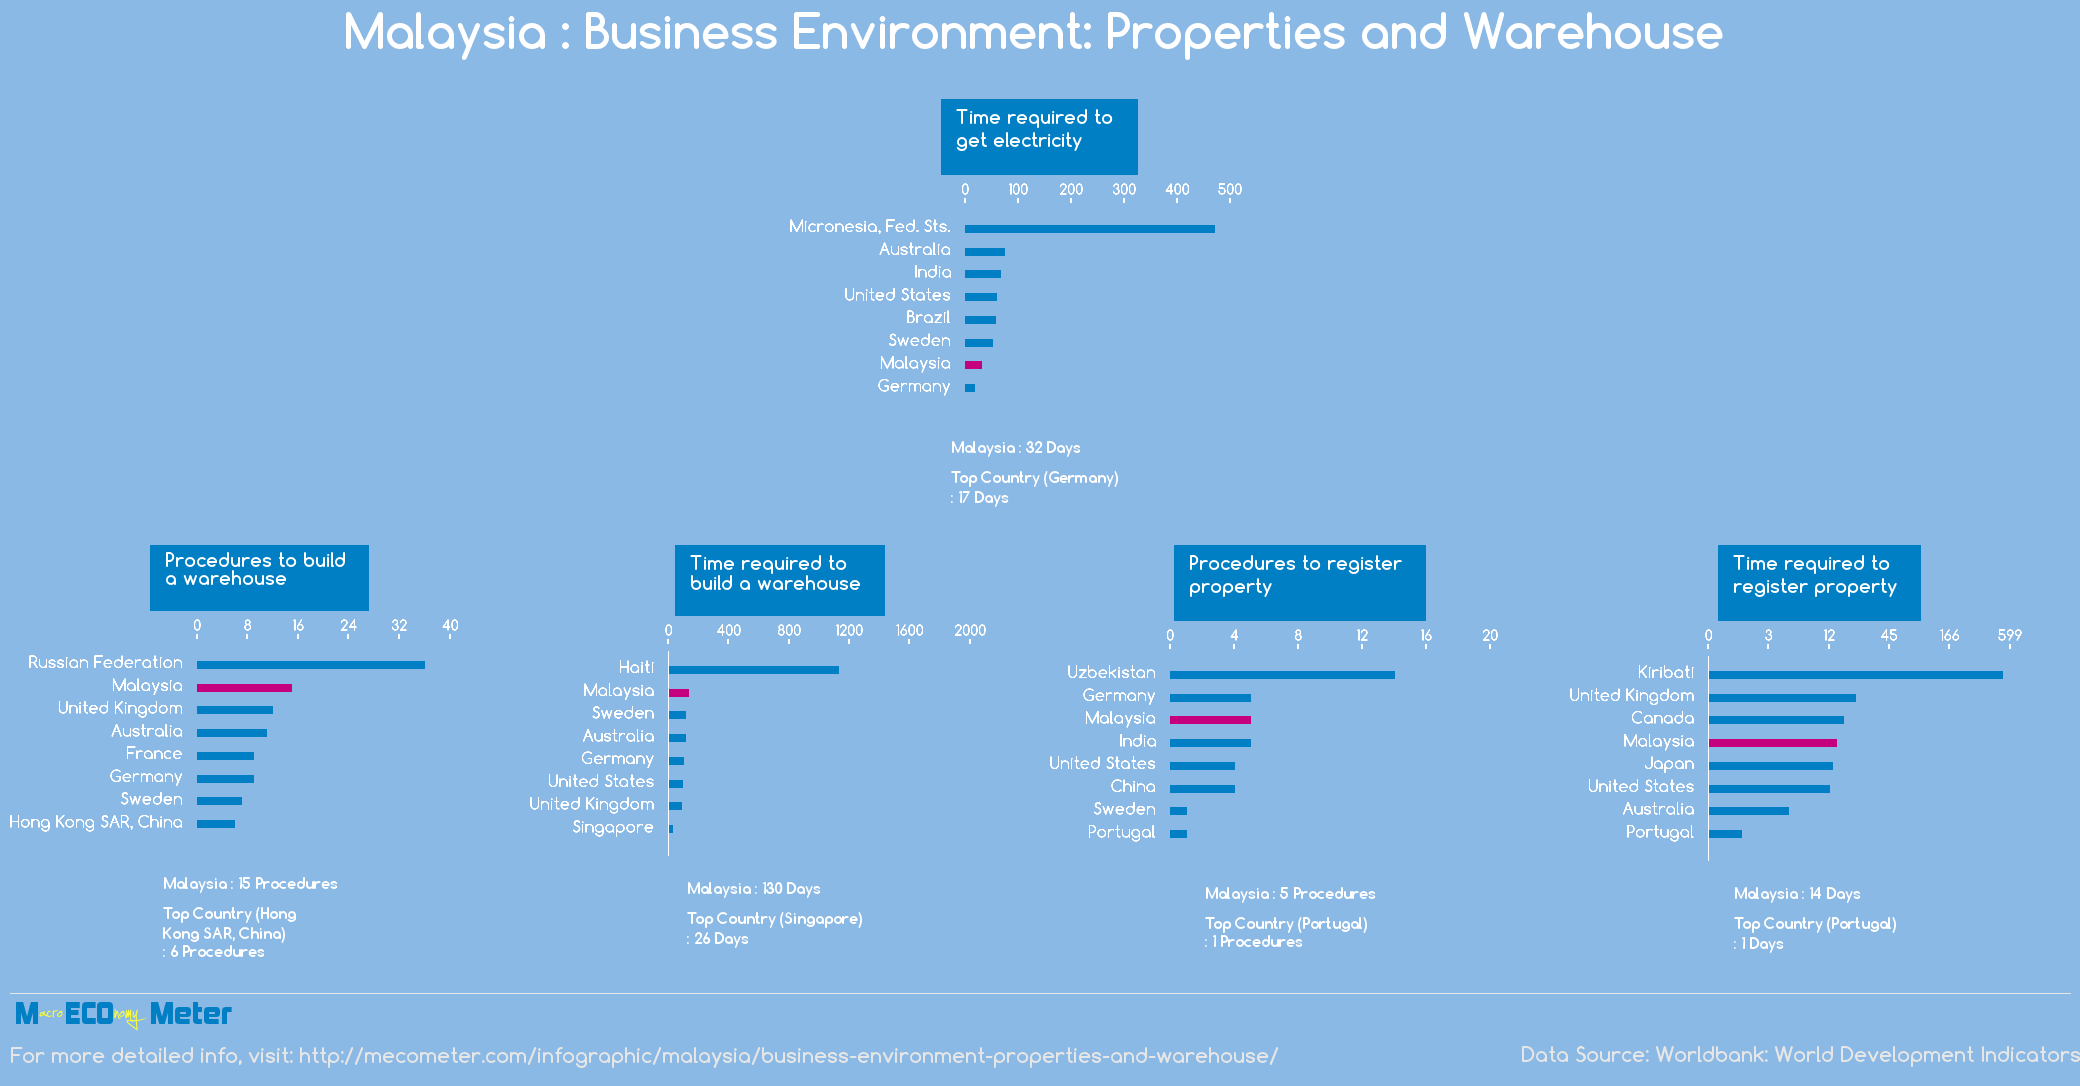 Malaysia : Business Environment: Properties and Warehouse